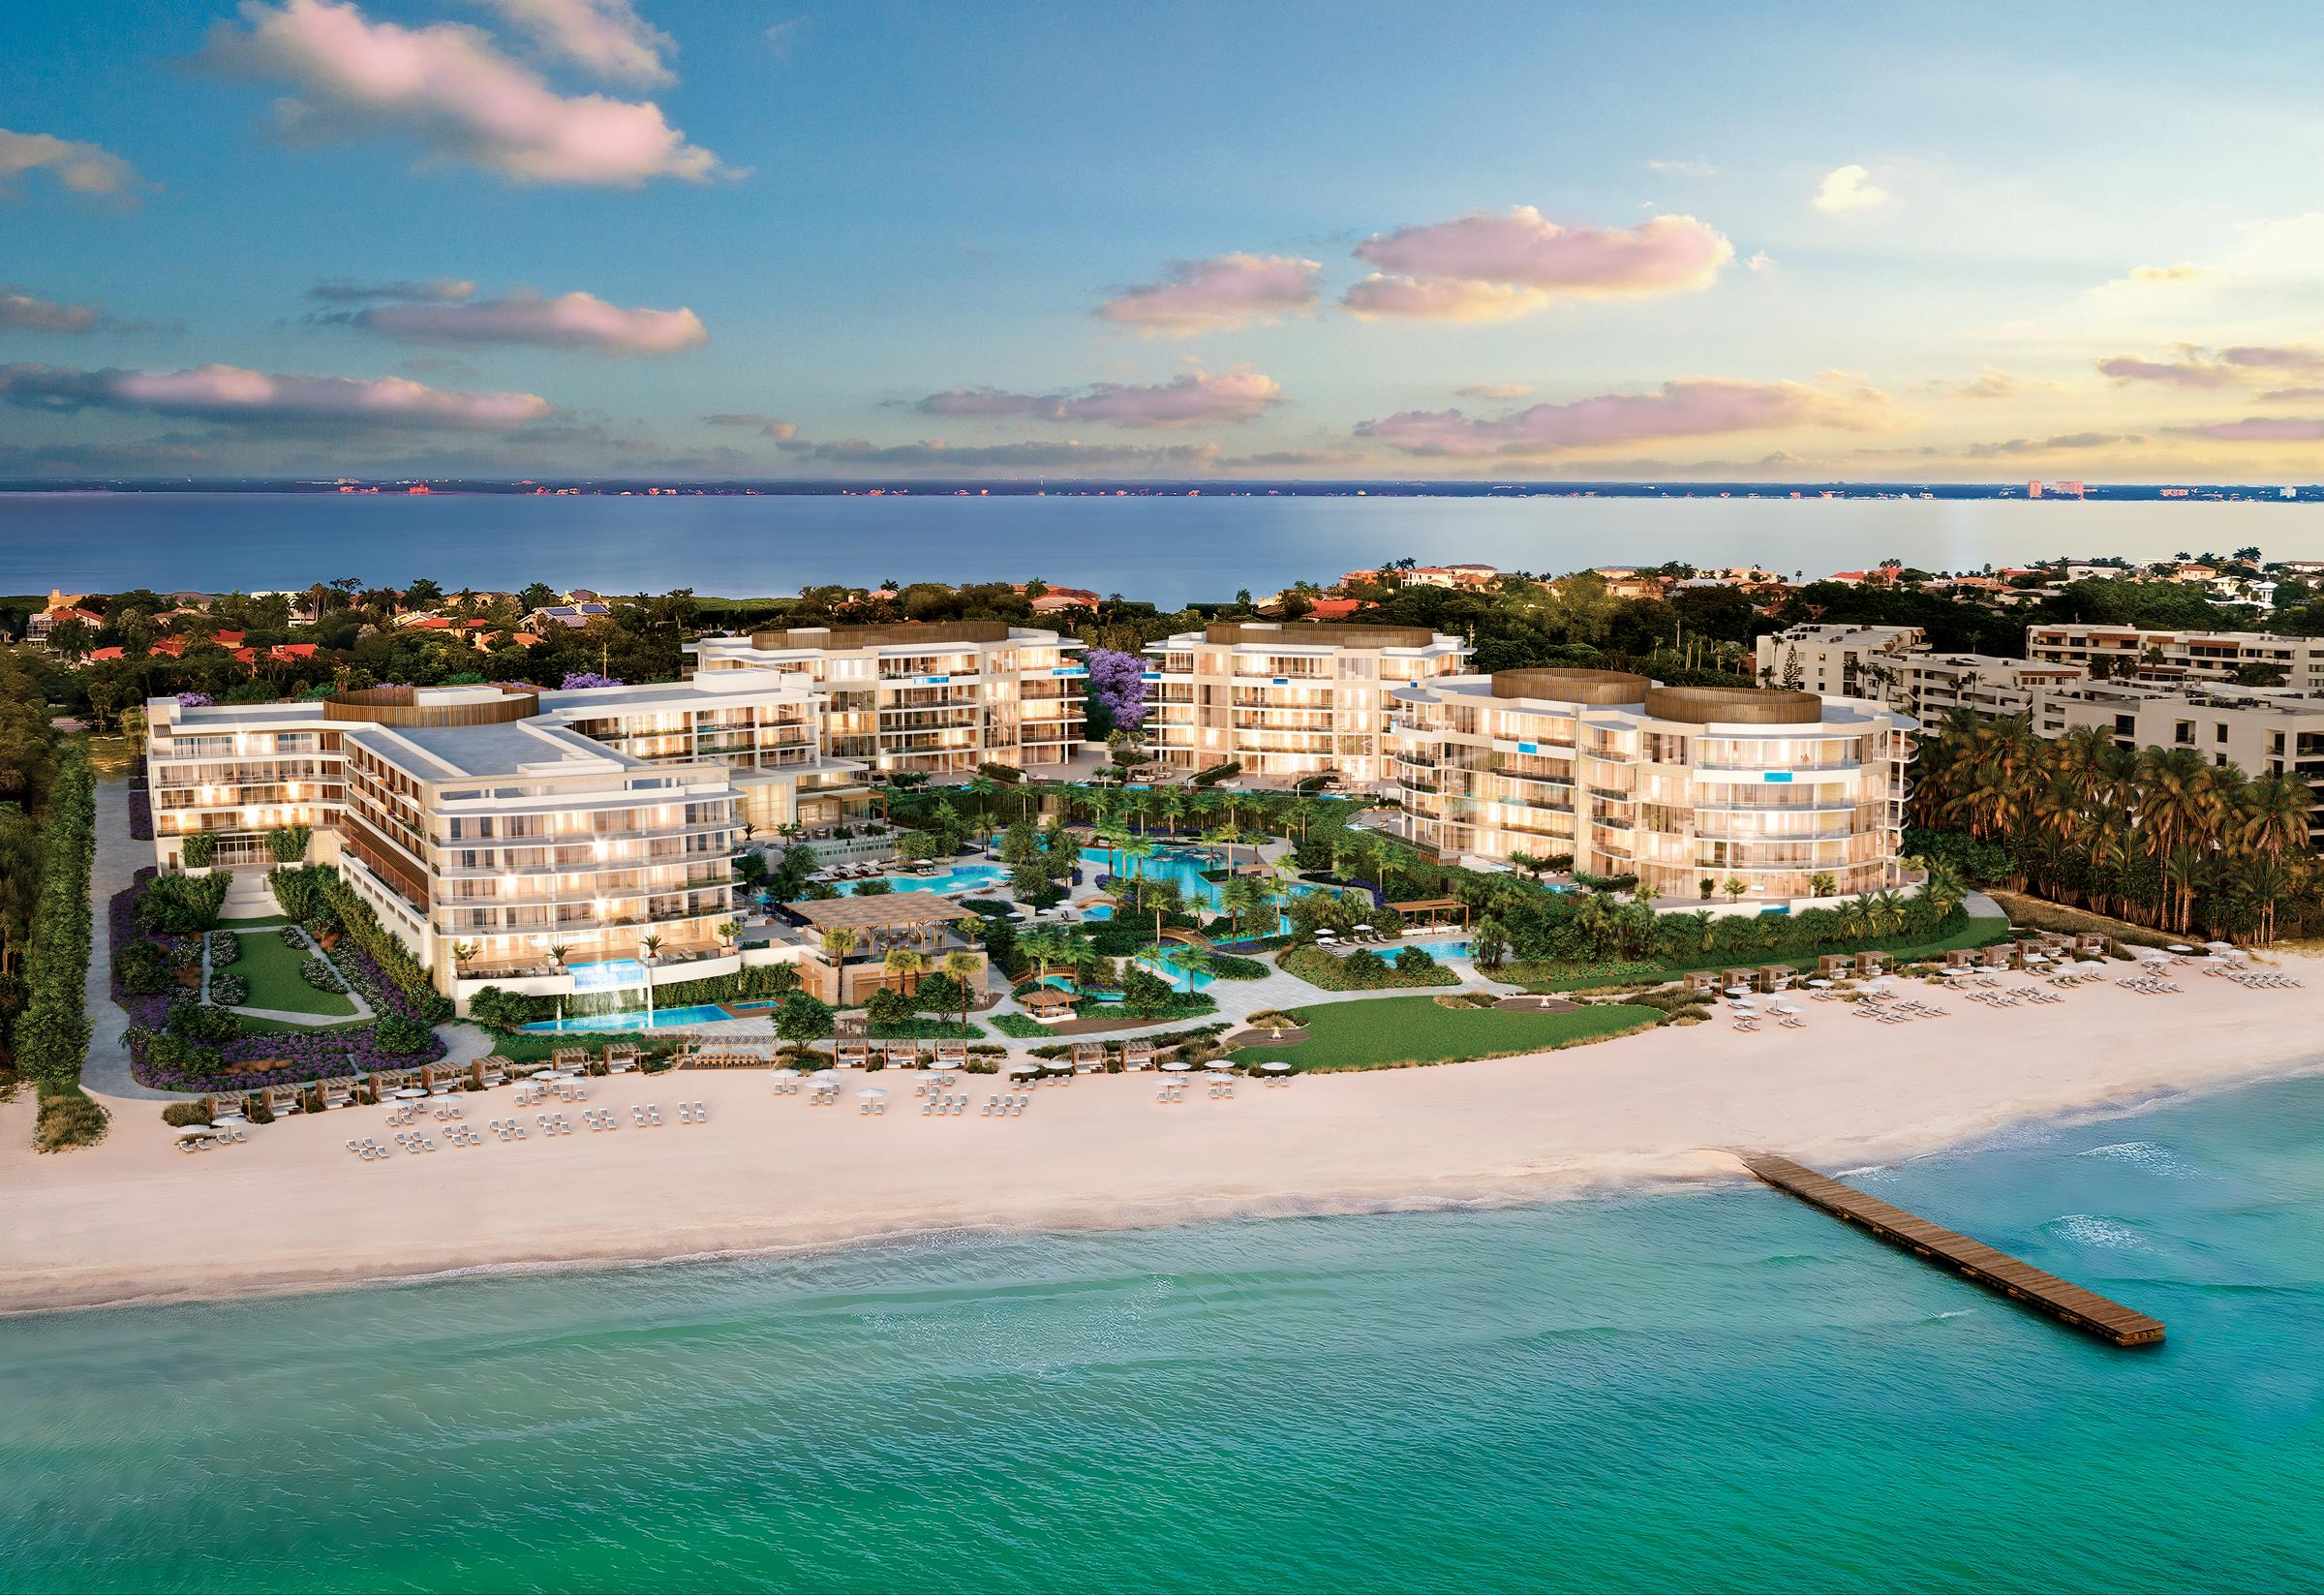 Unicorp Achieves Unprecedented Record Sales with Summer Launch of The Residences at The St. Regis Longboat Key Resort